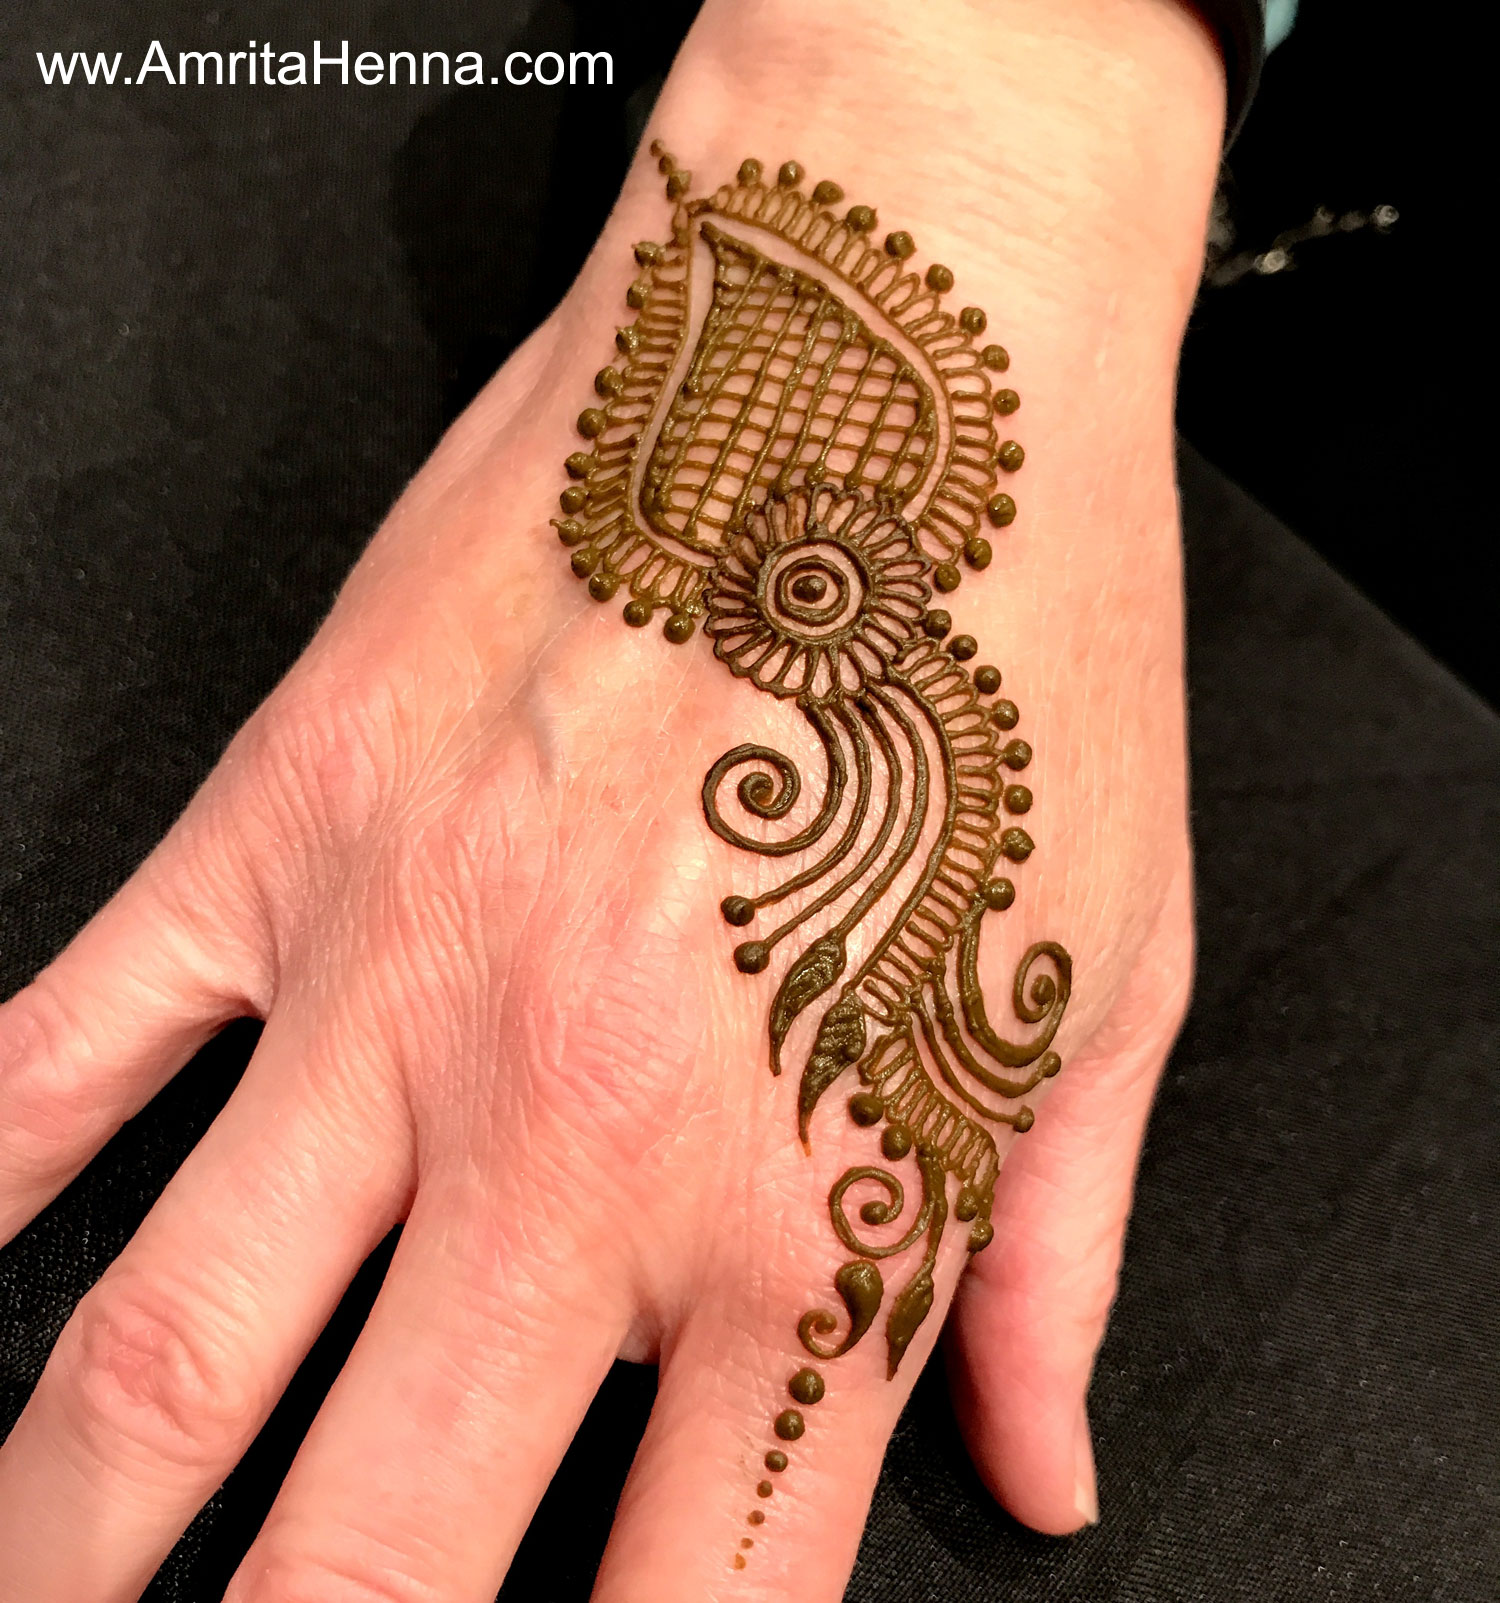 top 10 diy easy and quick 2 minute henna designs henna tattoo mehndi art by amrita. Black Bedroom Furniture Sets. Home Design Ideas